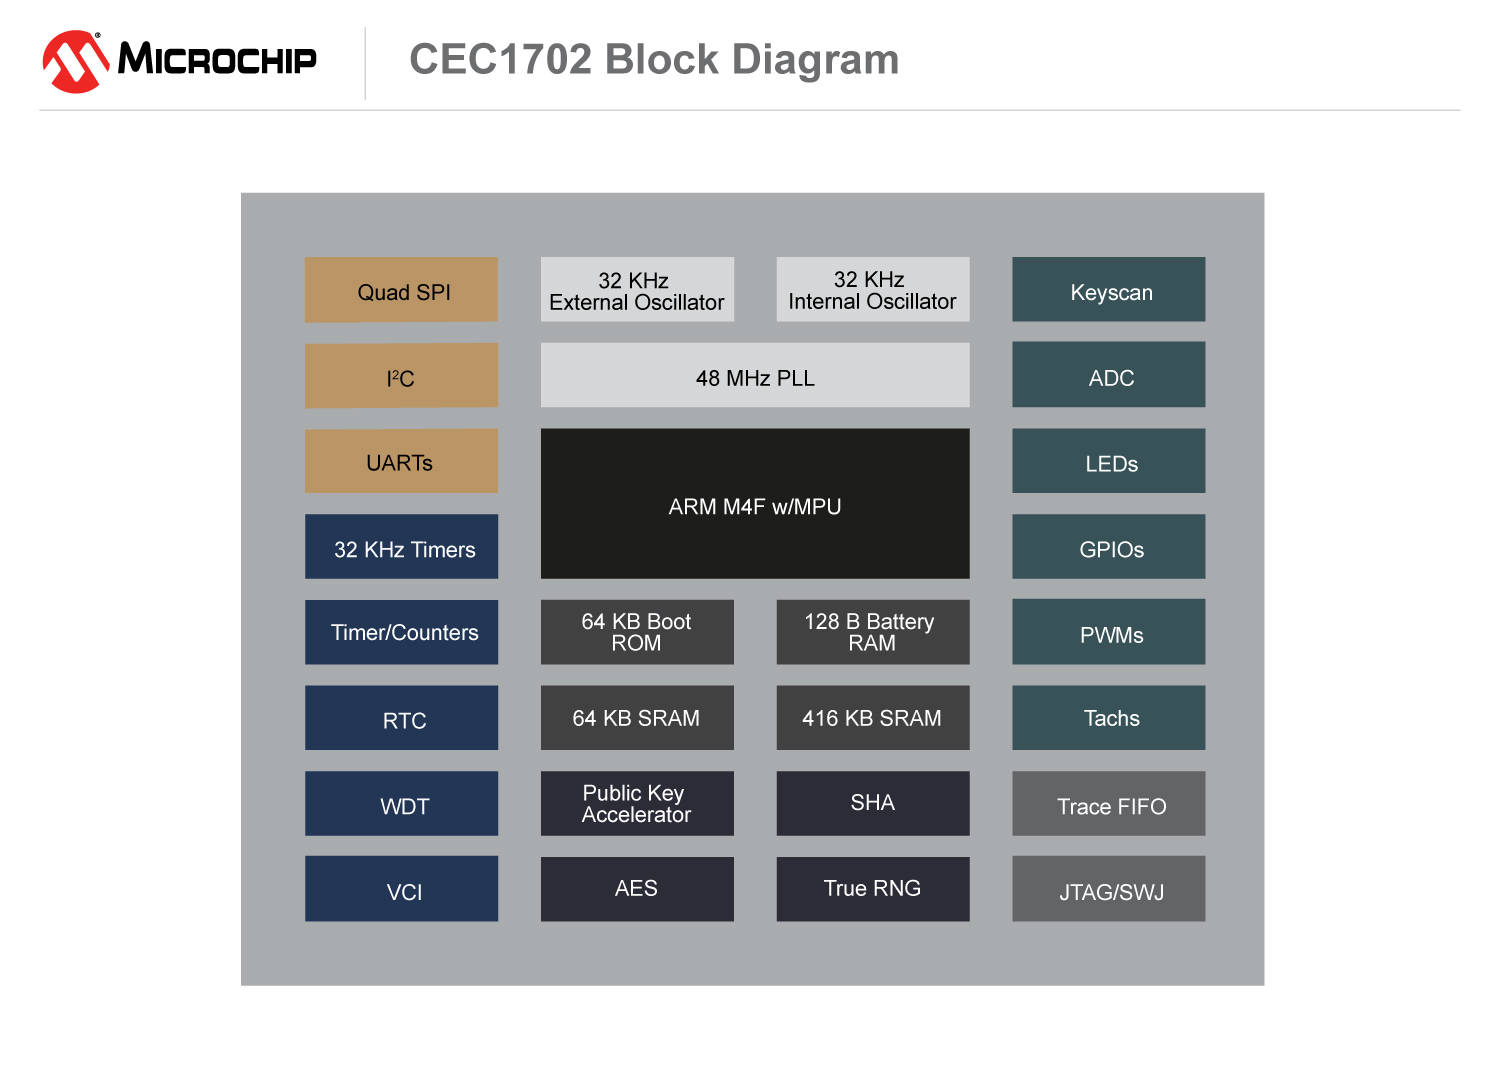 Block diagram of the CEC1702 MCU